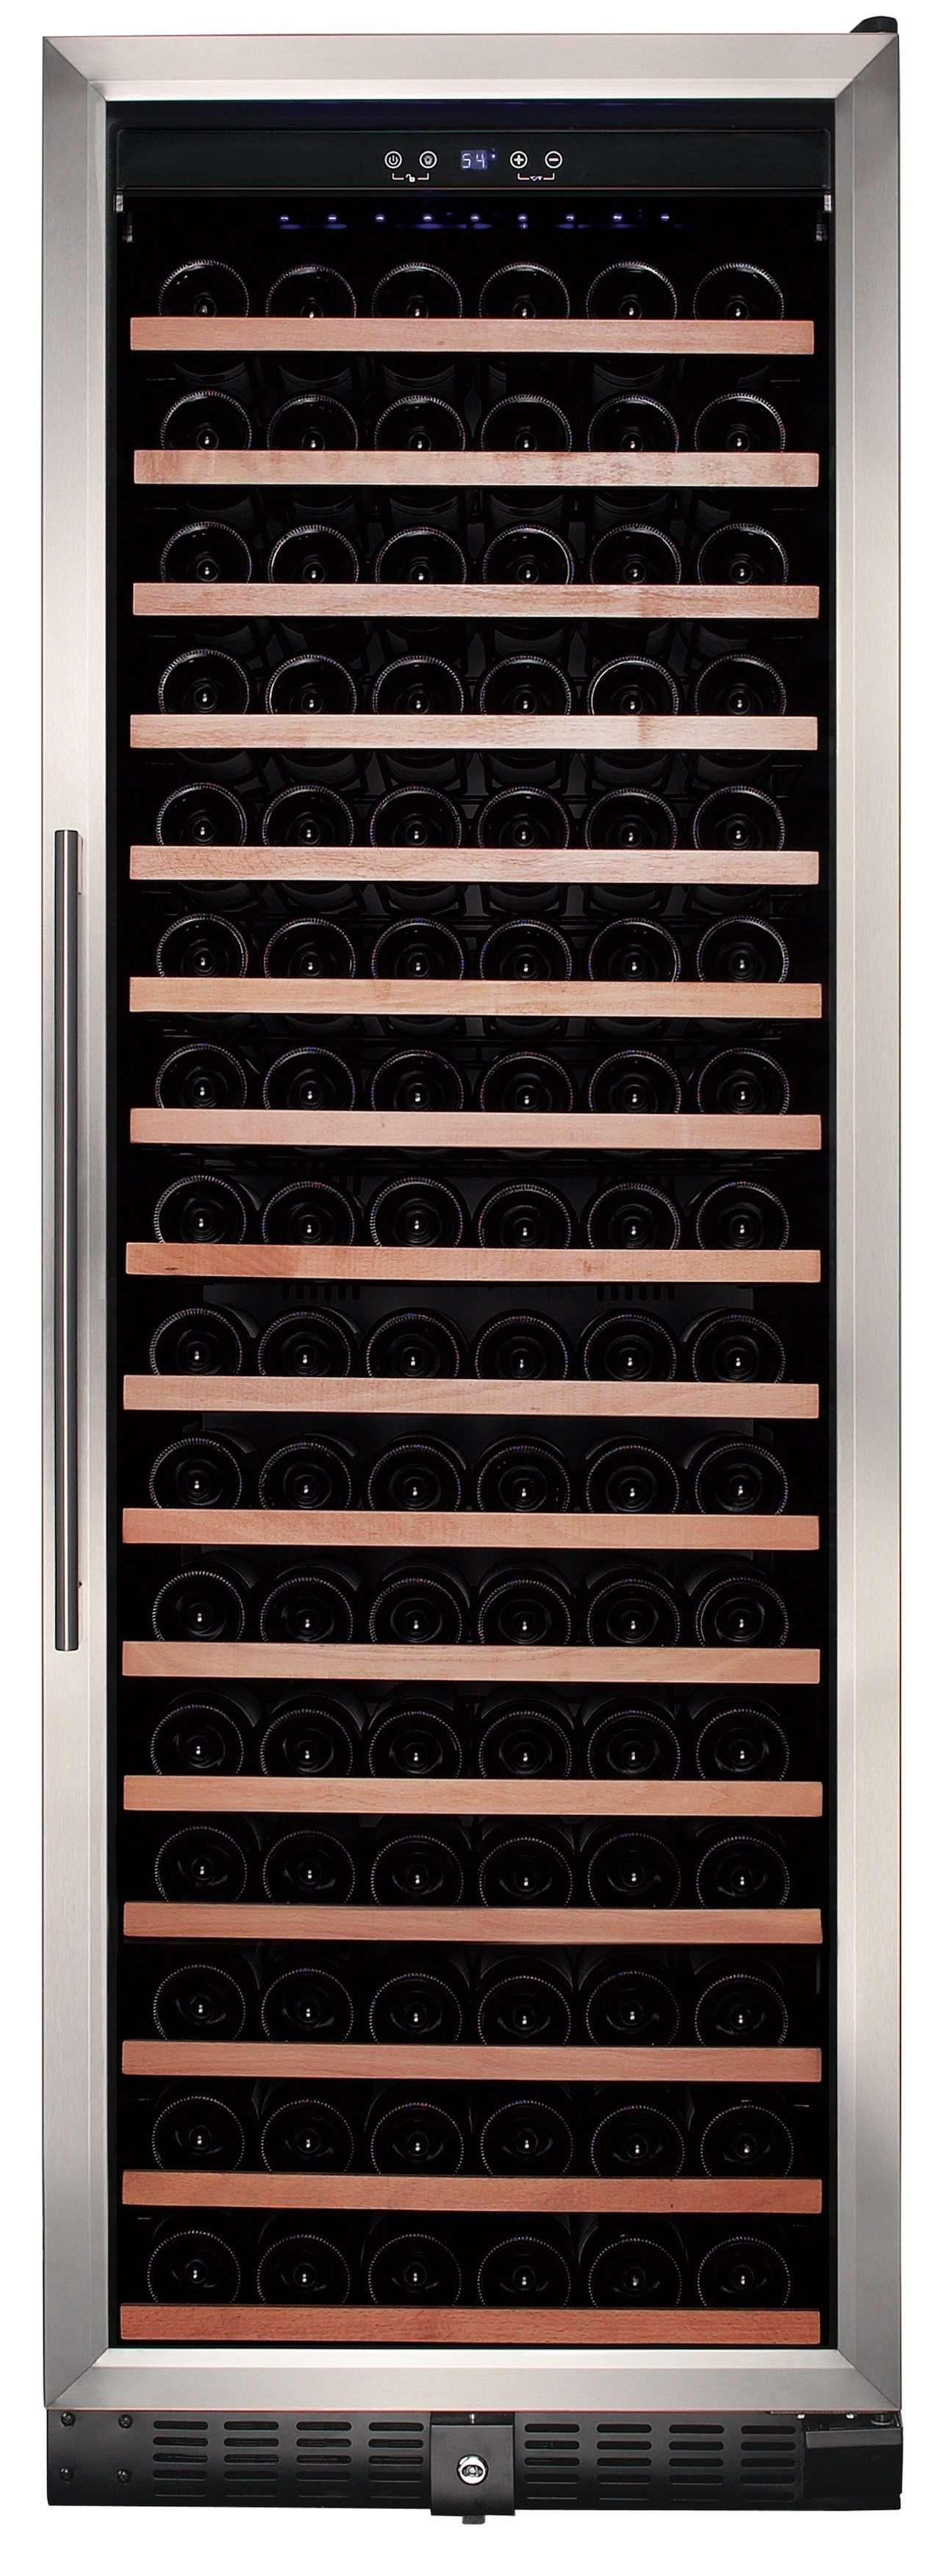 Smith & Hanks 166-Bottle Single Zone Wine Cooler, Smoked Black Glass - RW428SR,RW428SR